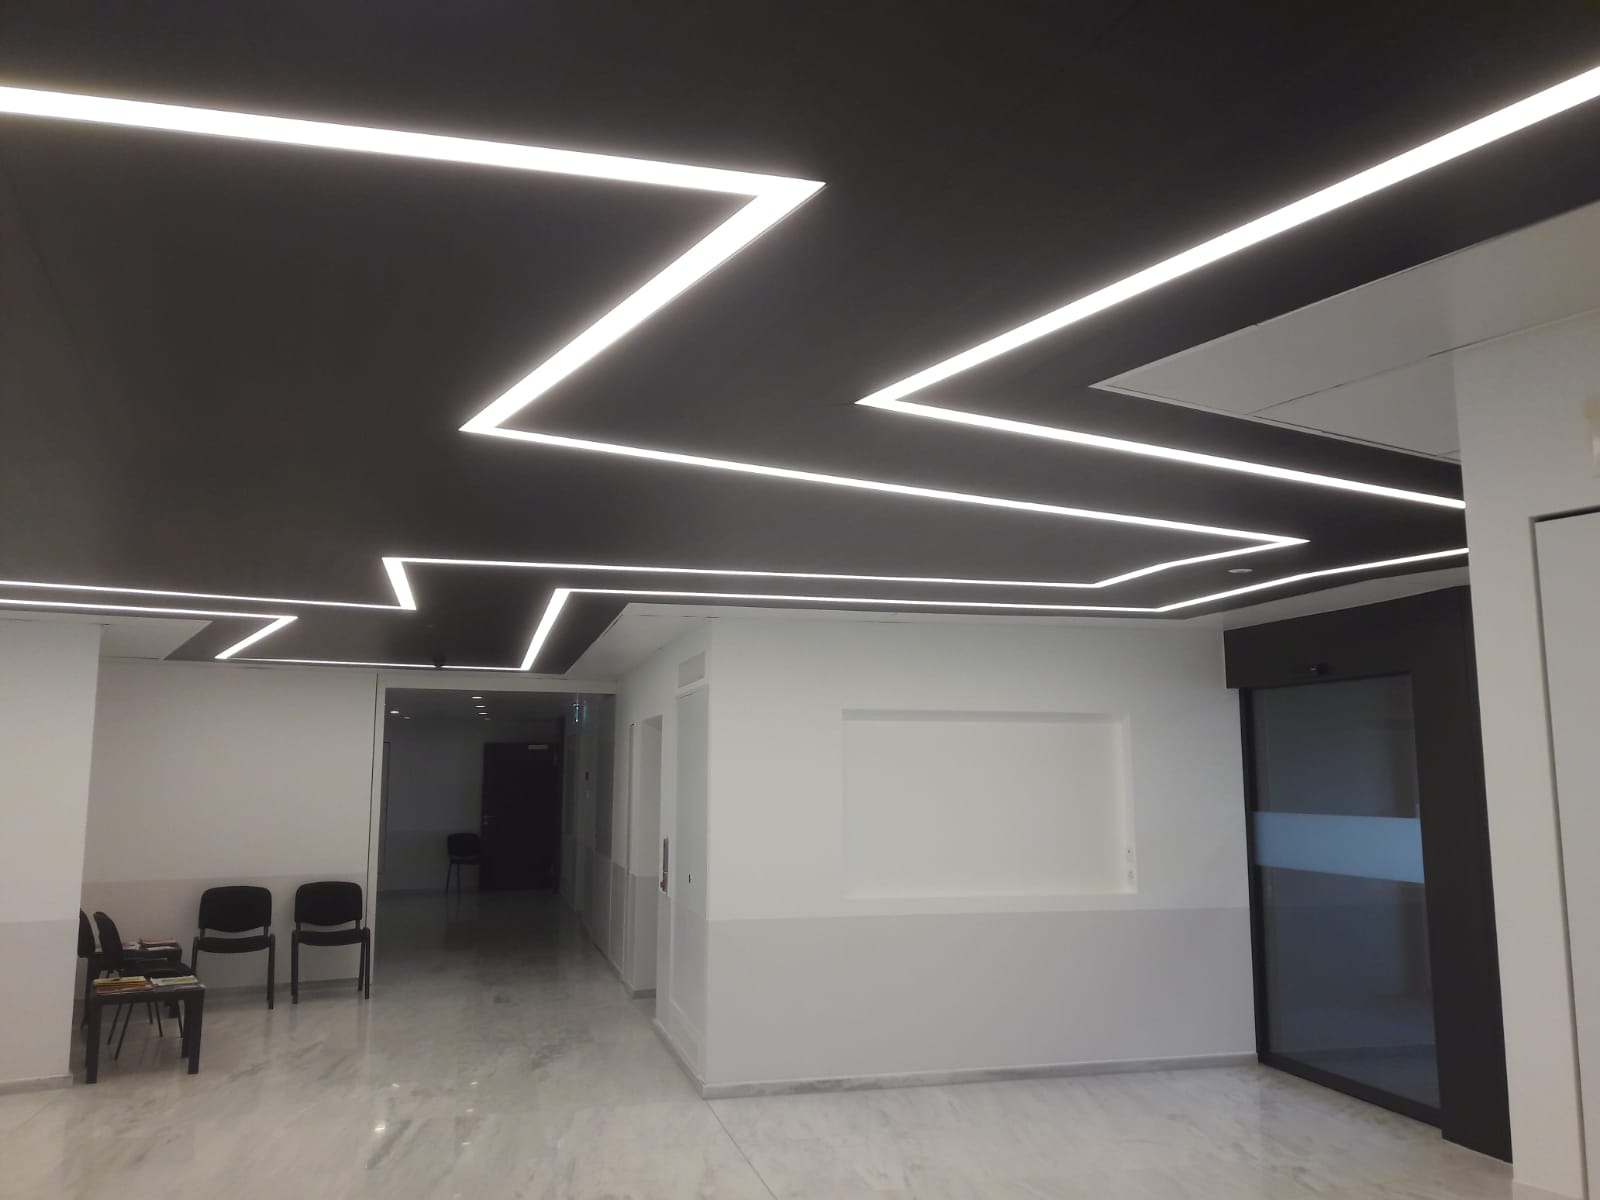 plafond clinique 1